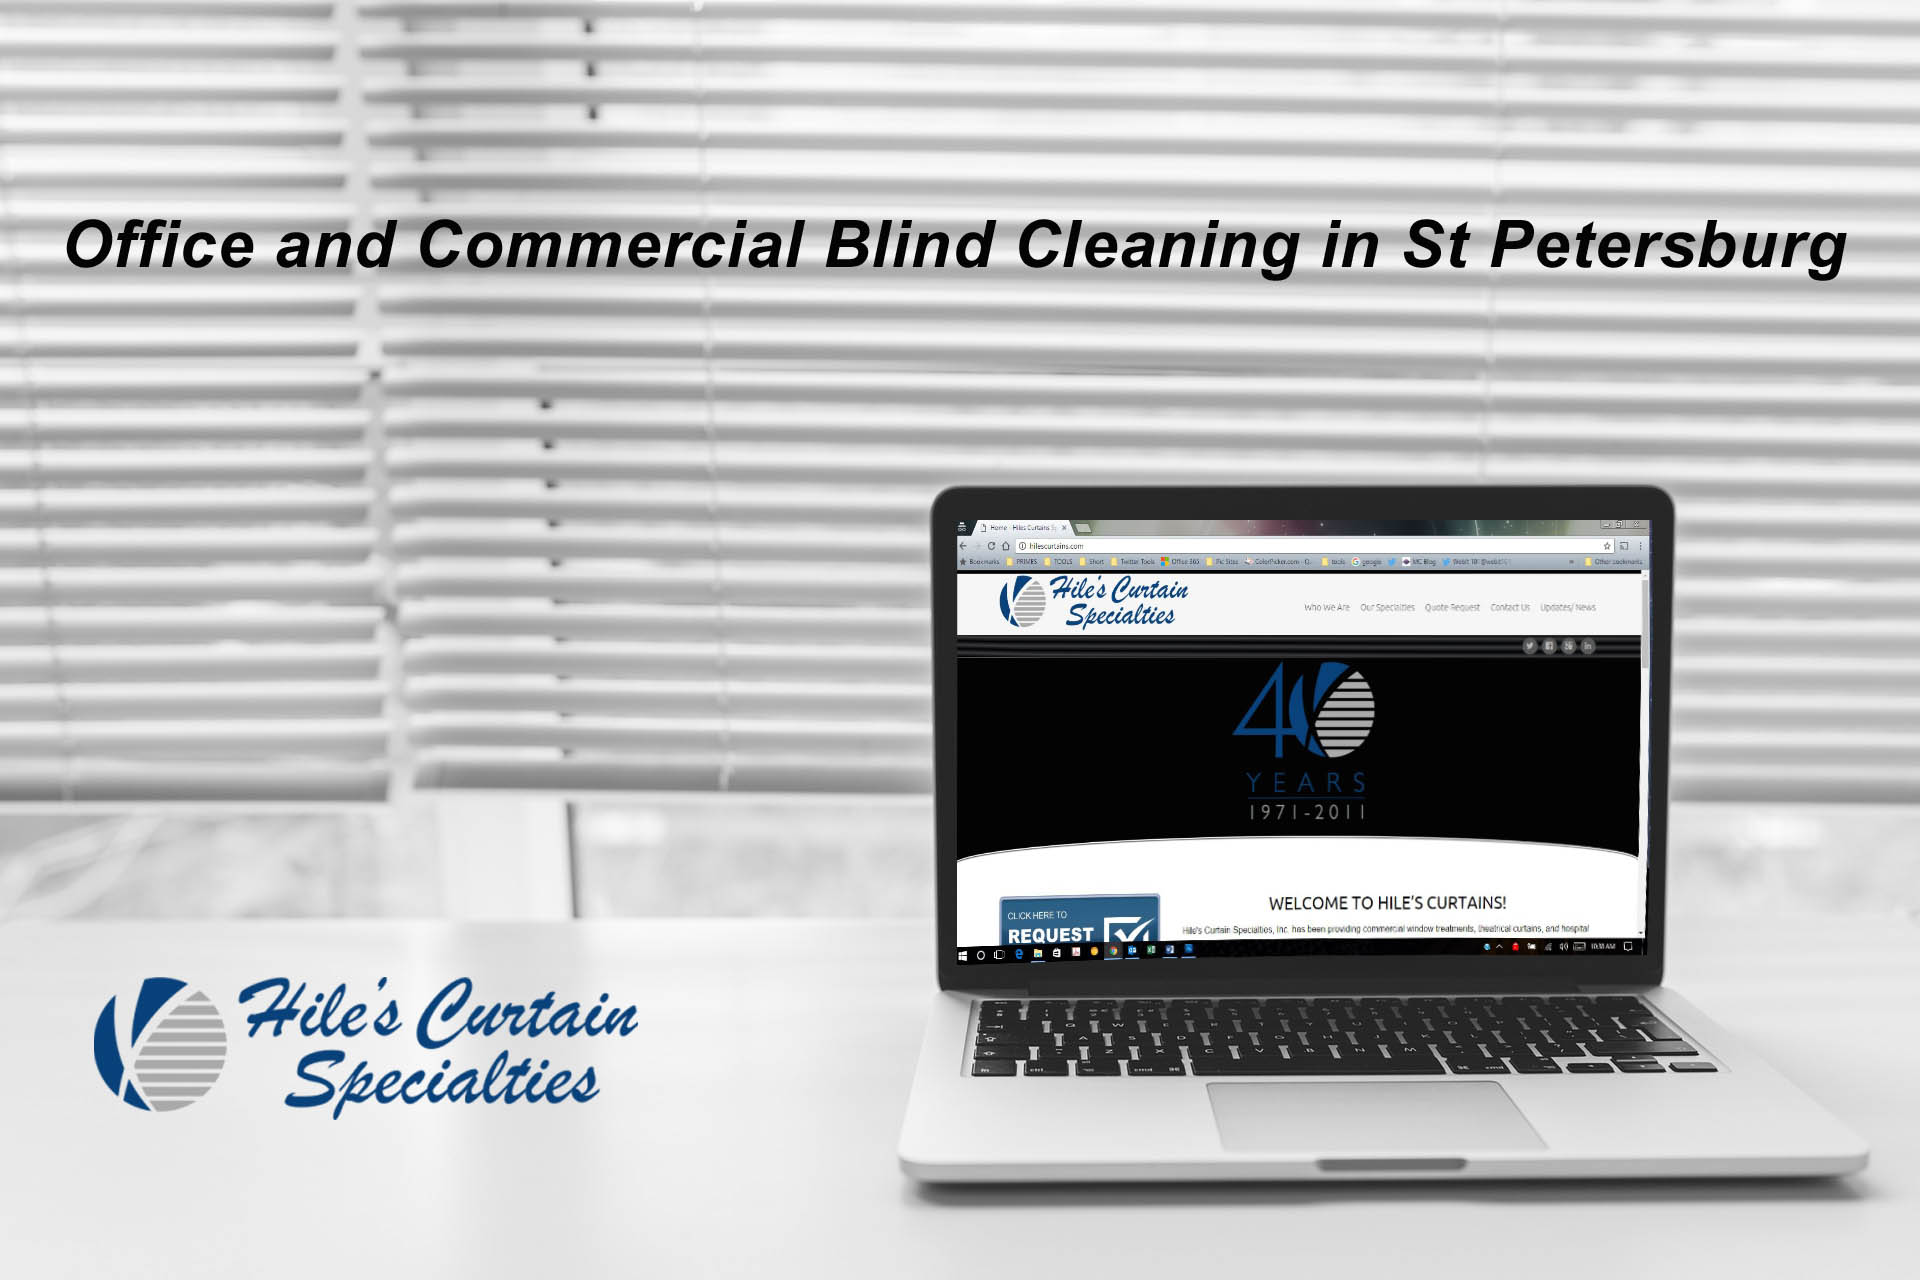 Office and Commercial Blind Cleaning in St Petersburg Florida